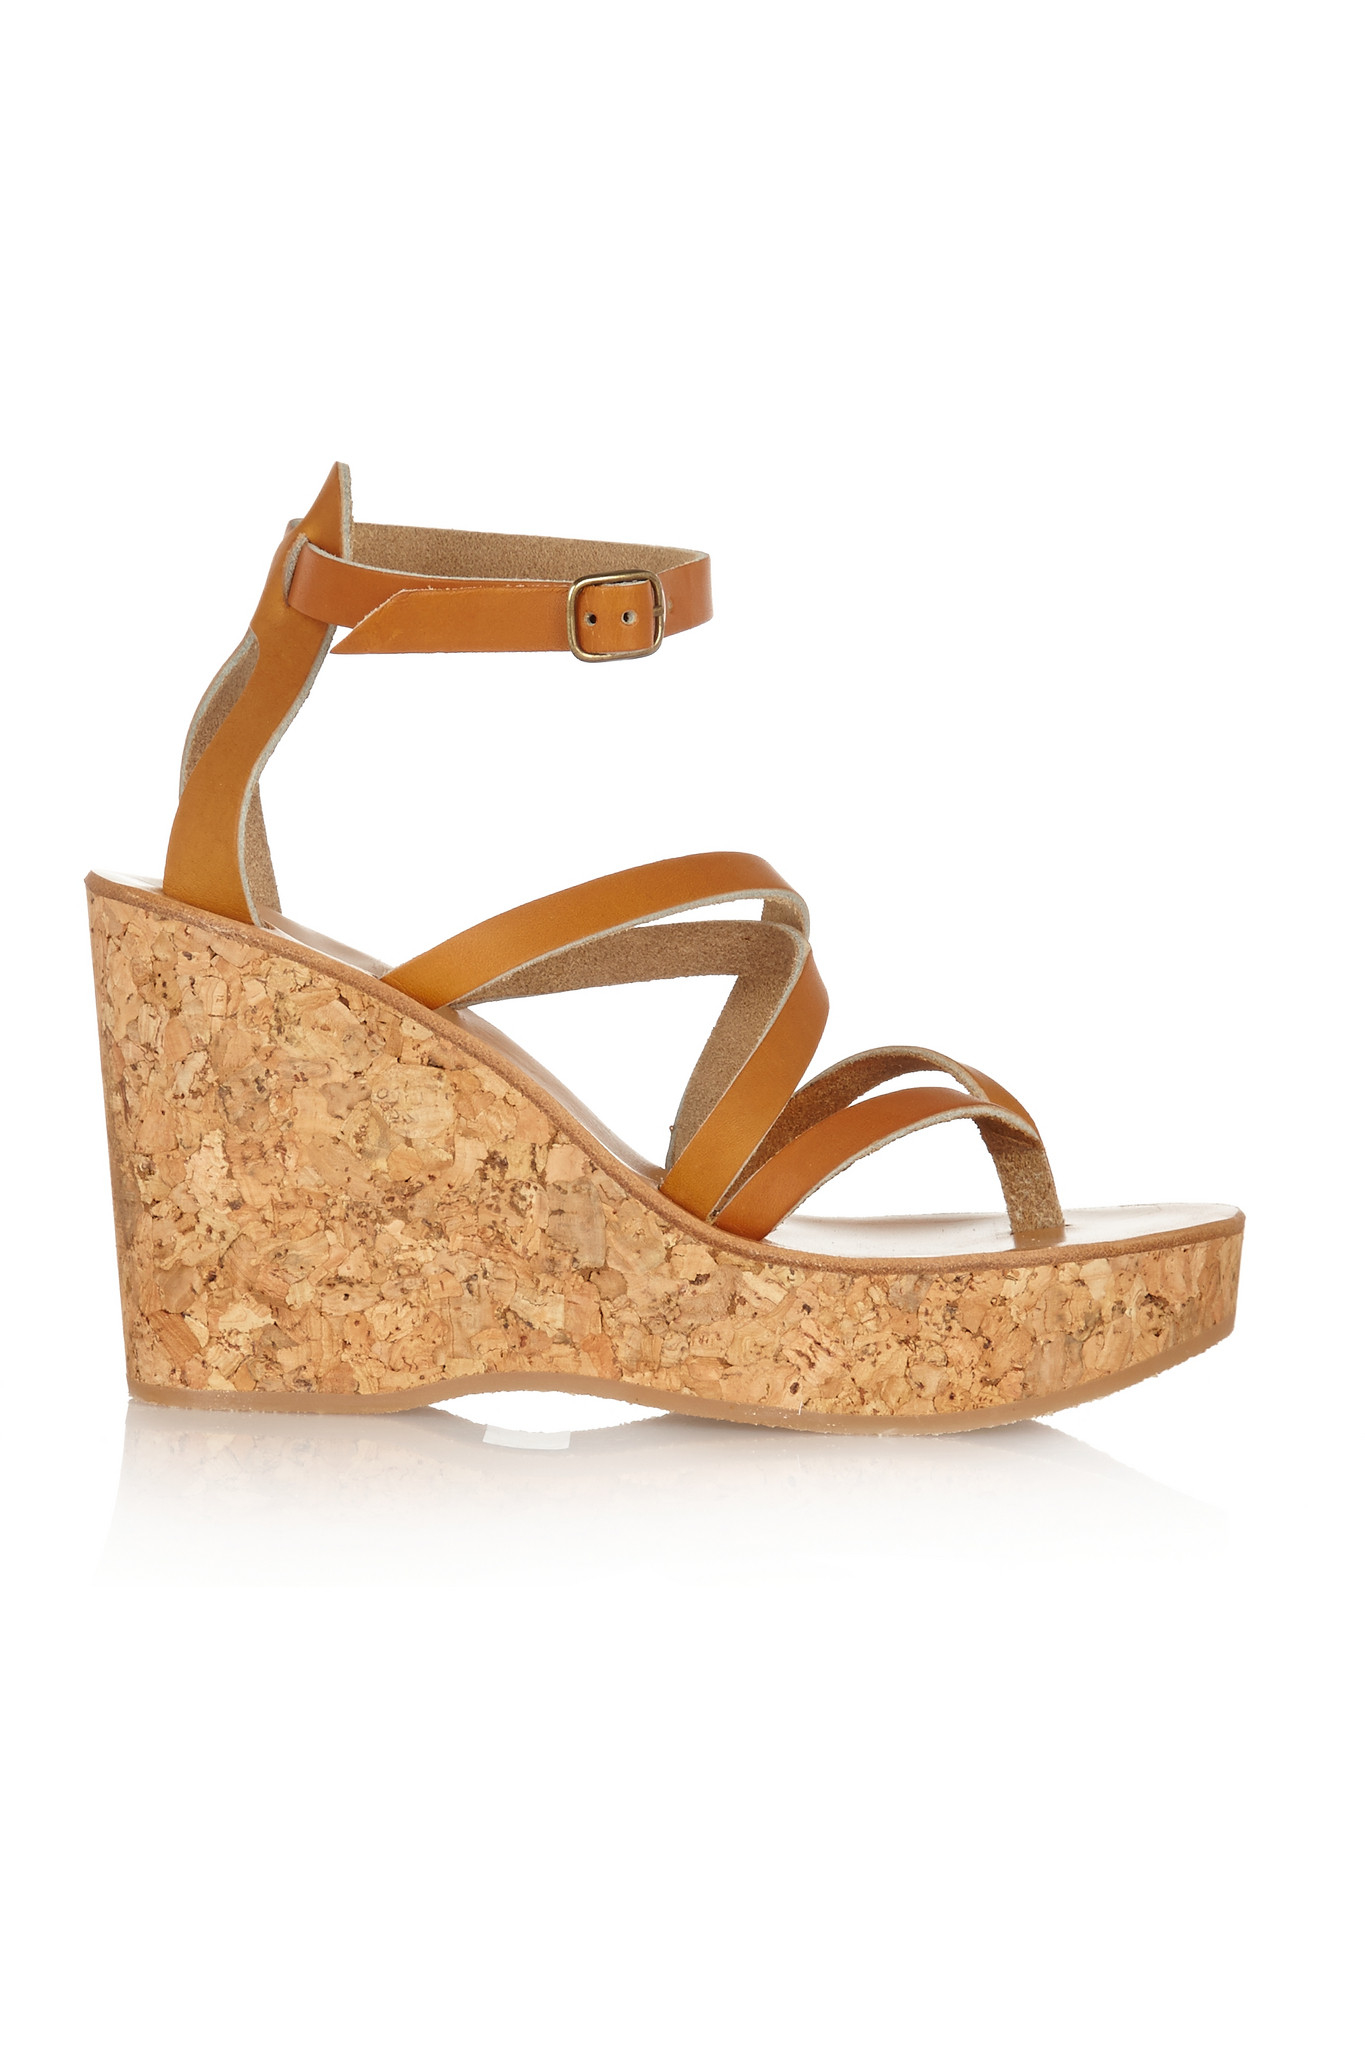 2afe9753d6a K. Jacques Cunegonde Leather Wedge Sandals in Brown - Lyst